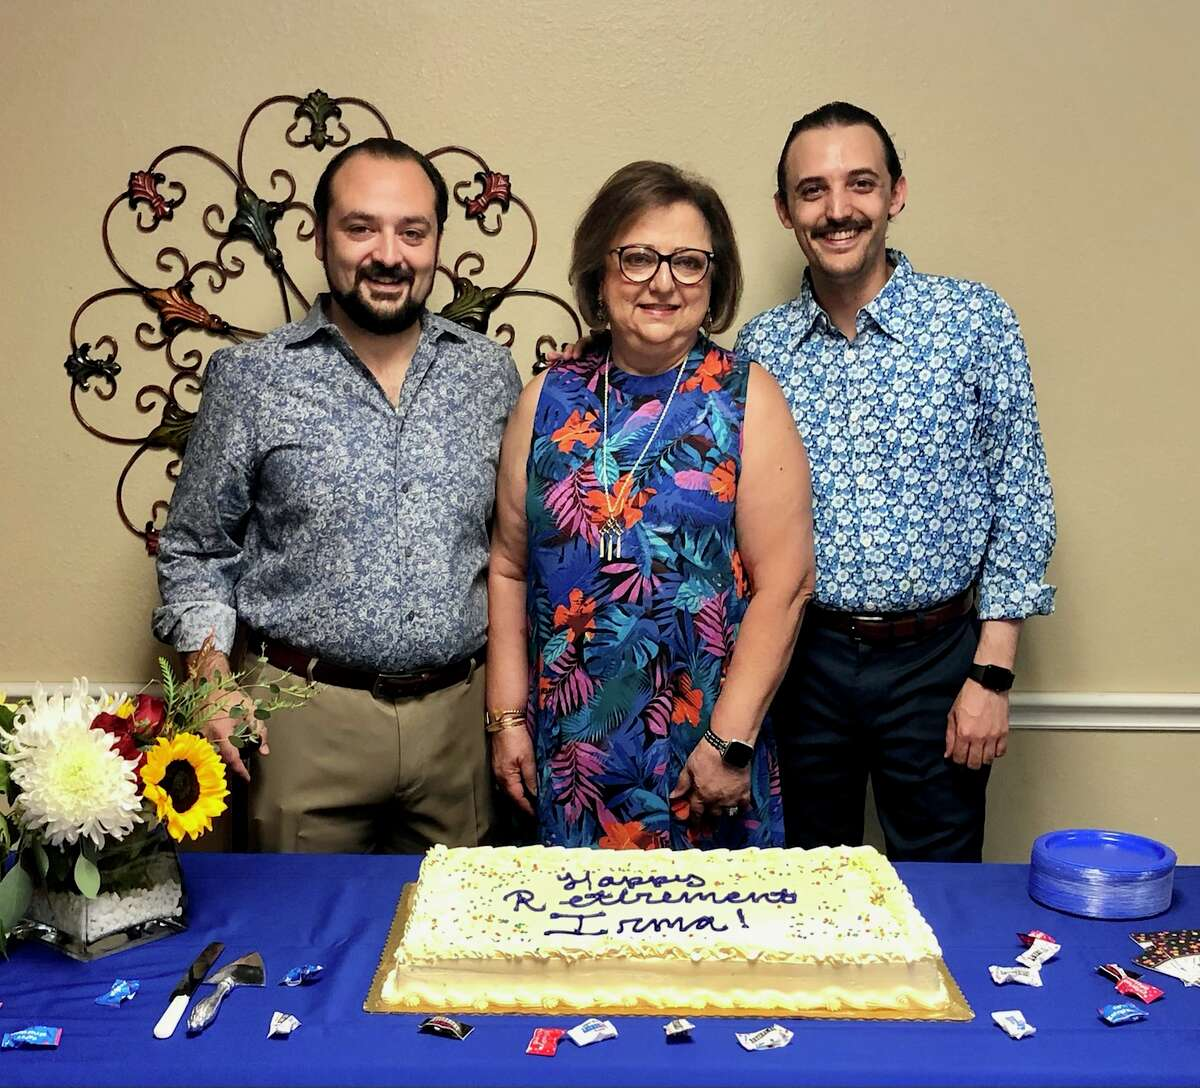 On Wednesday, friends, family and supporters gathered at the Hale County Senior Citizens Center to celebrate Irma Shackelford's retirement as director of the AmeriCorps Seniors RSVP Program.